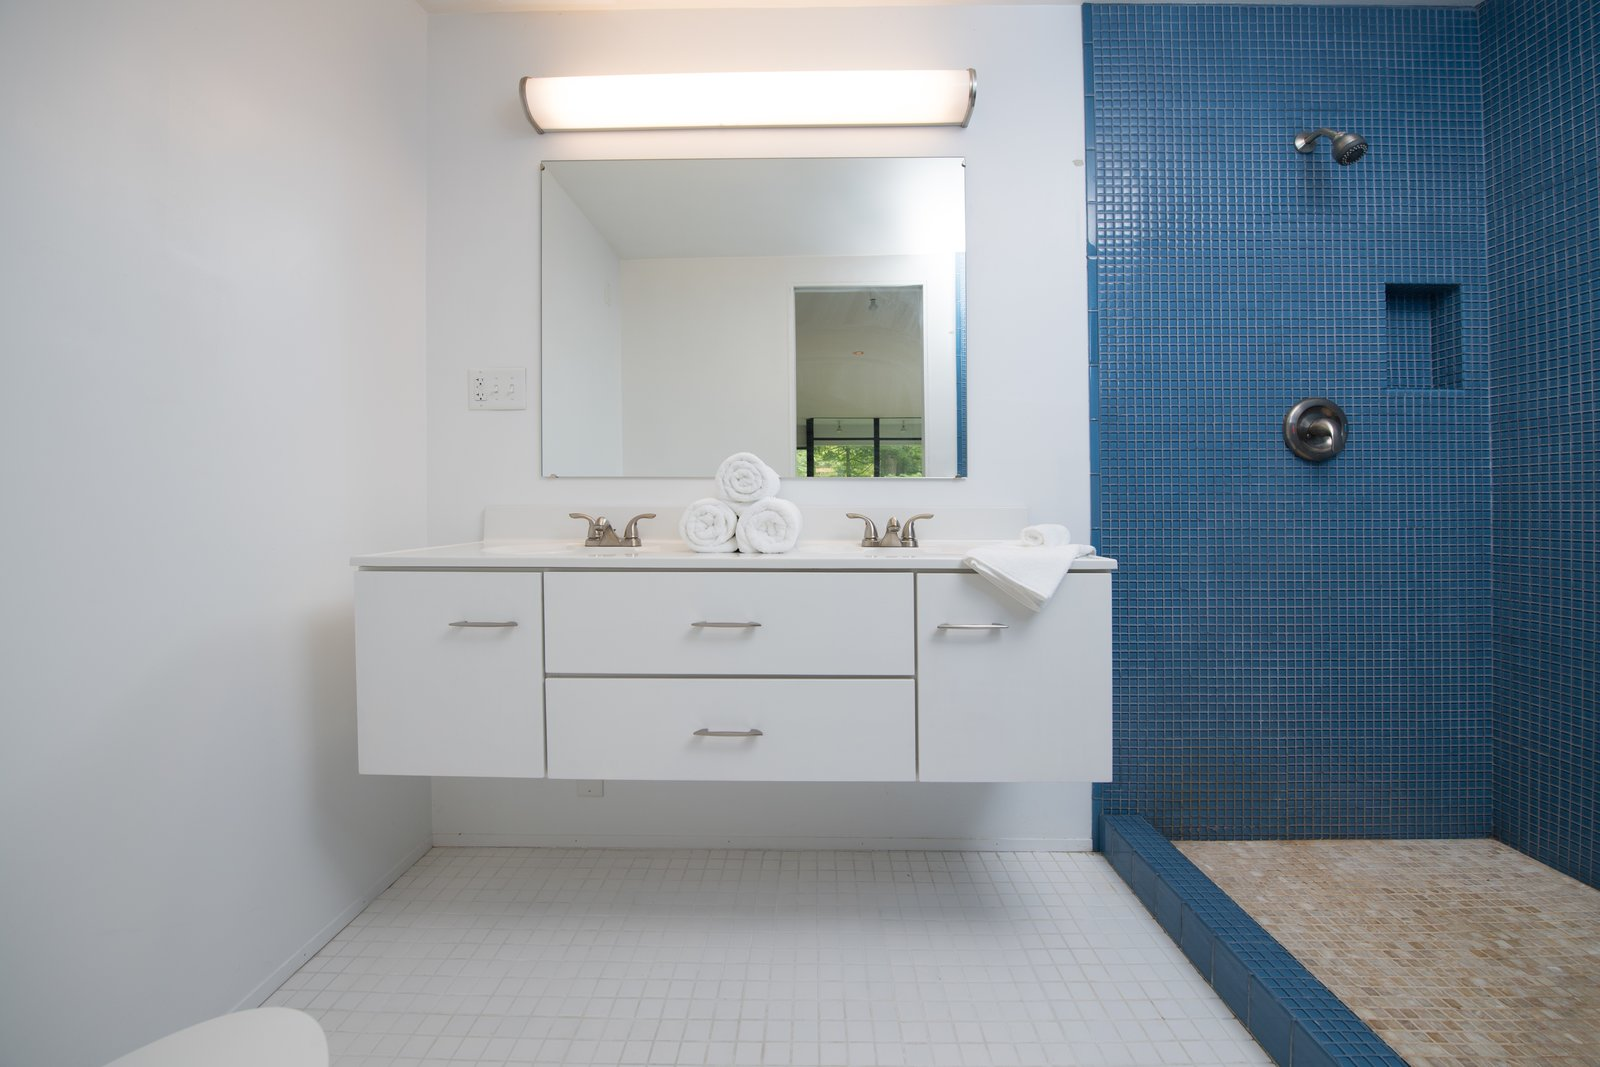 Bath Room, Open Shower, Mosaic Tile Wall, and Wall Mount Sink  Photo 9 of 12 in At $265K, Michael Graves's First Commission Is a Bargain